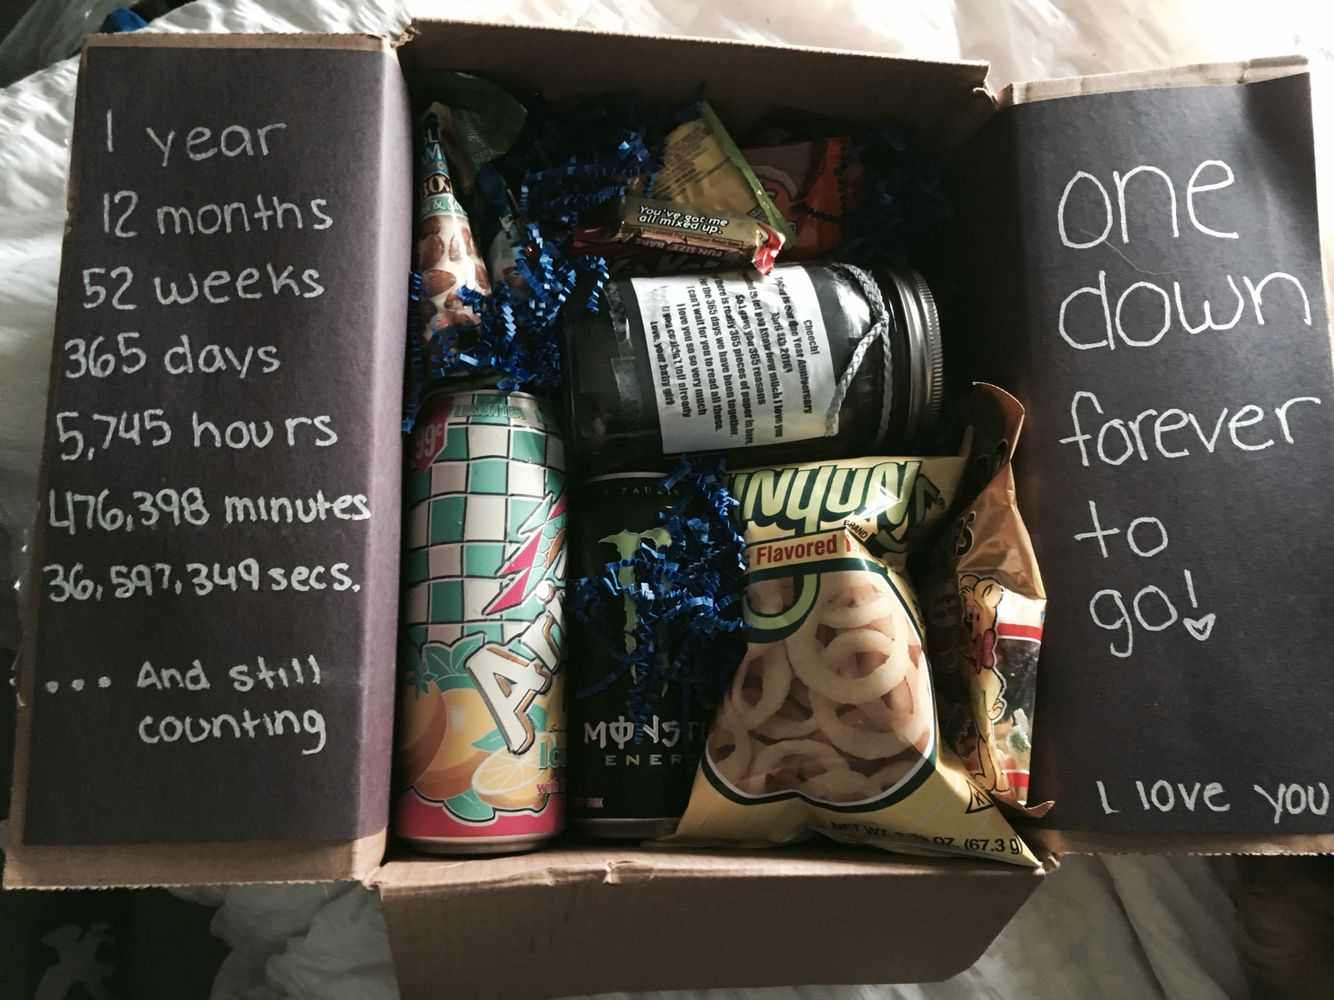 One year dating anniversary gifts for boyfriend